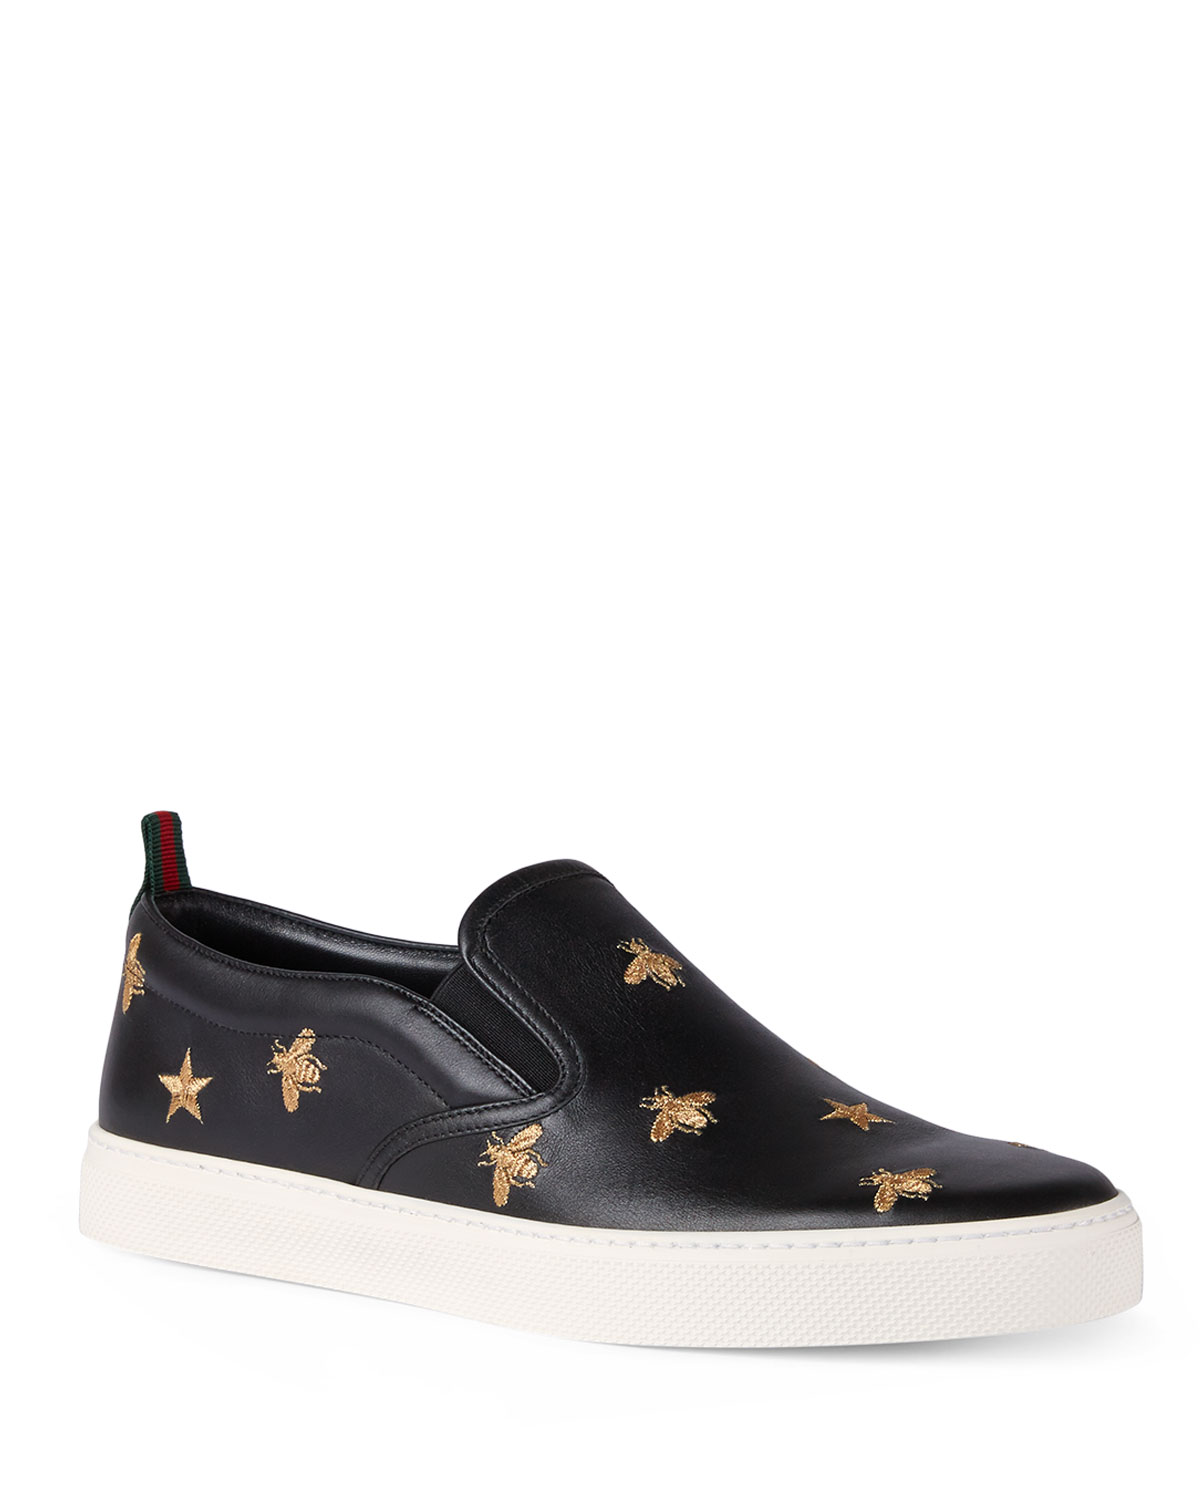 142768ad949 Quick Look. Gucci · Men s Dublin Bee   Star Embroidered Leather Slip-On  Sneakers